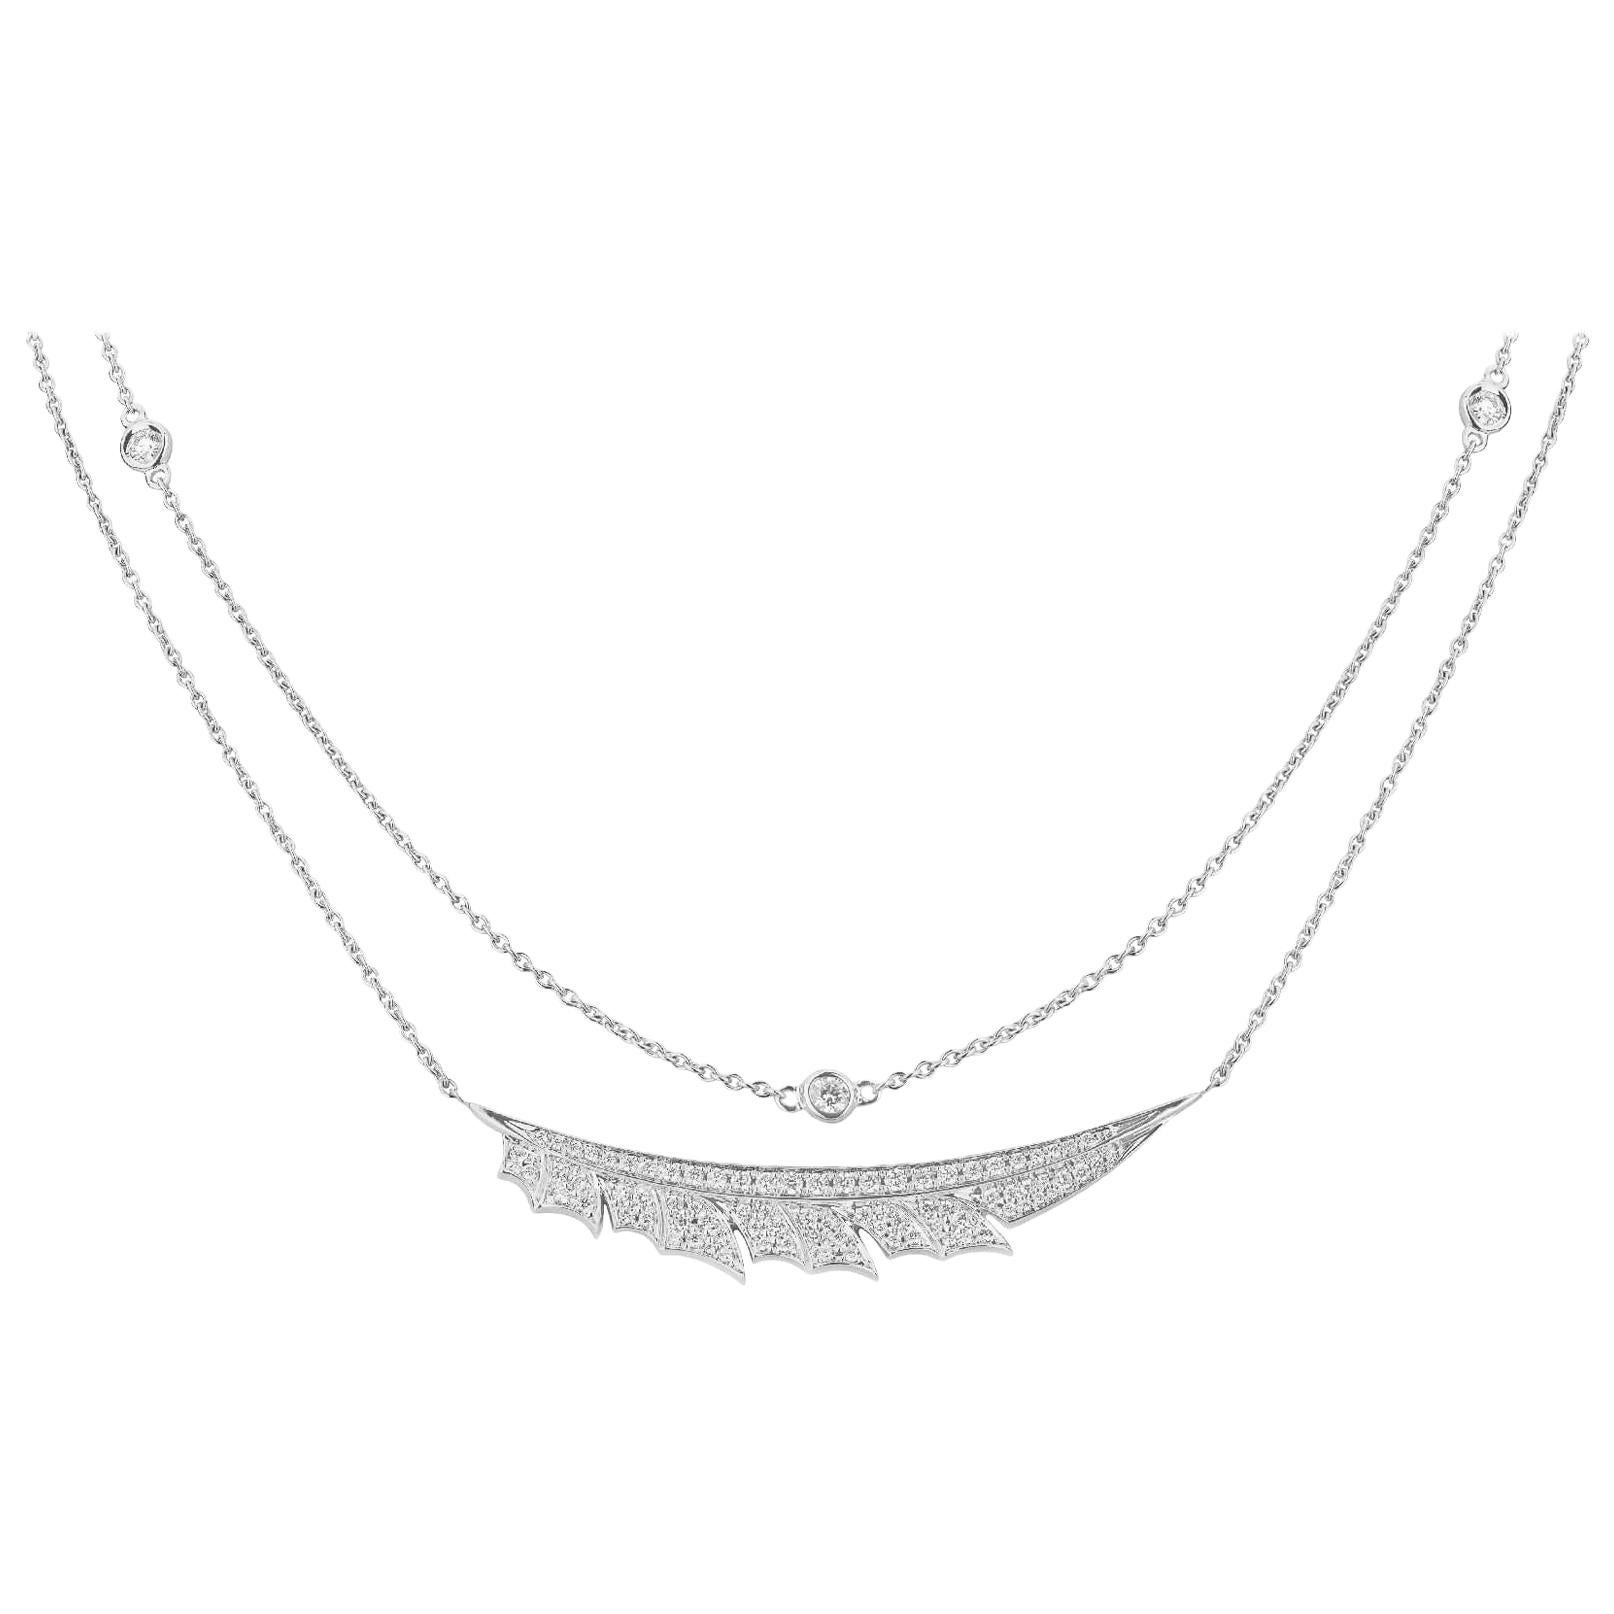 Stephen Webster Magnipheasant White Gold and White Diamond Pavé Feather Necklace